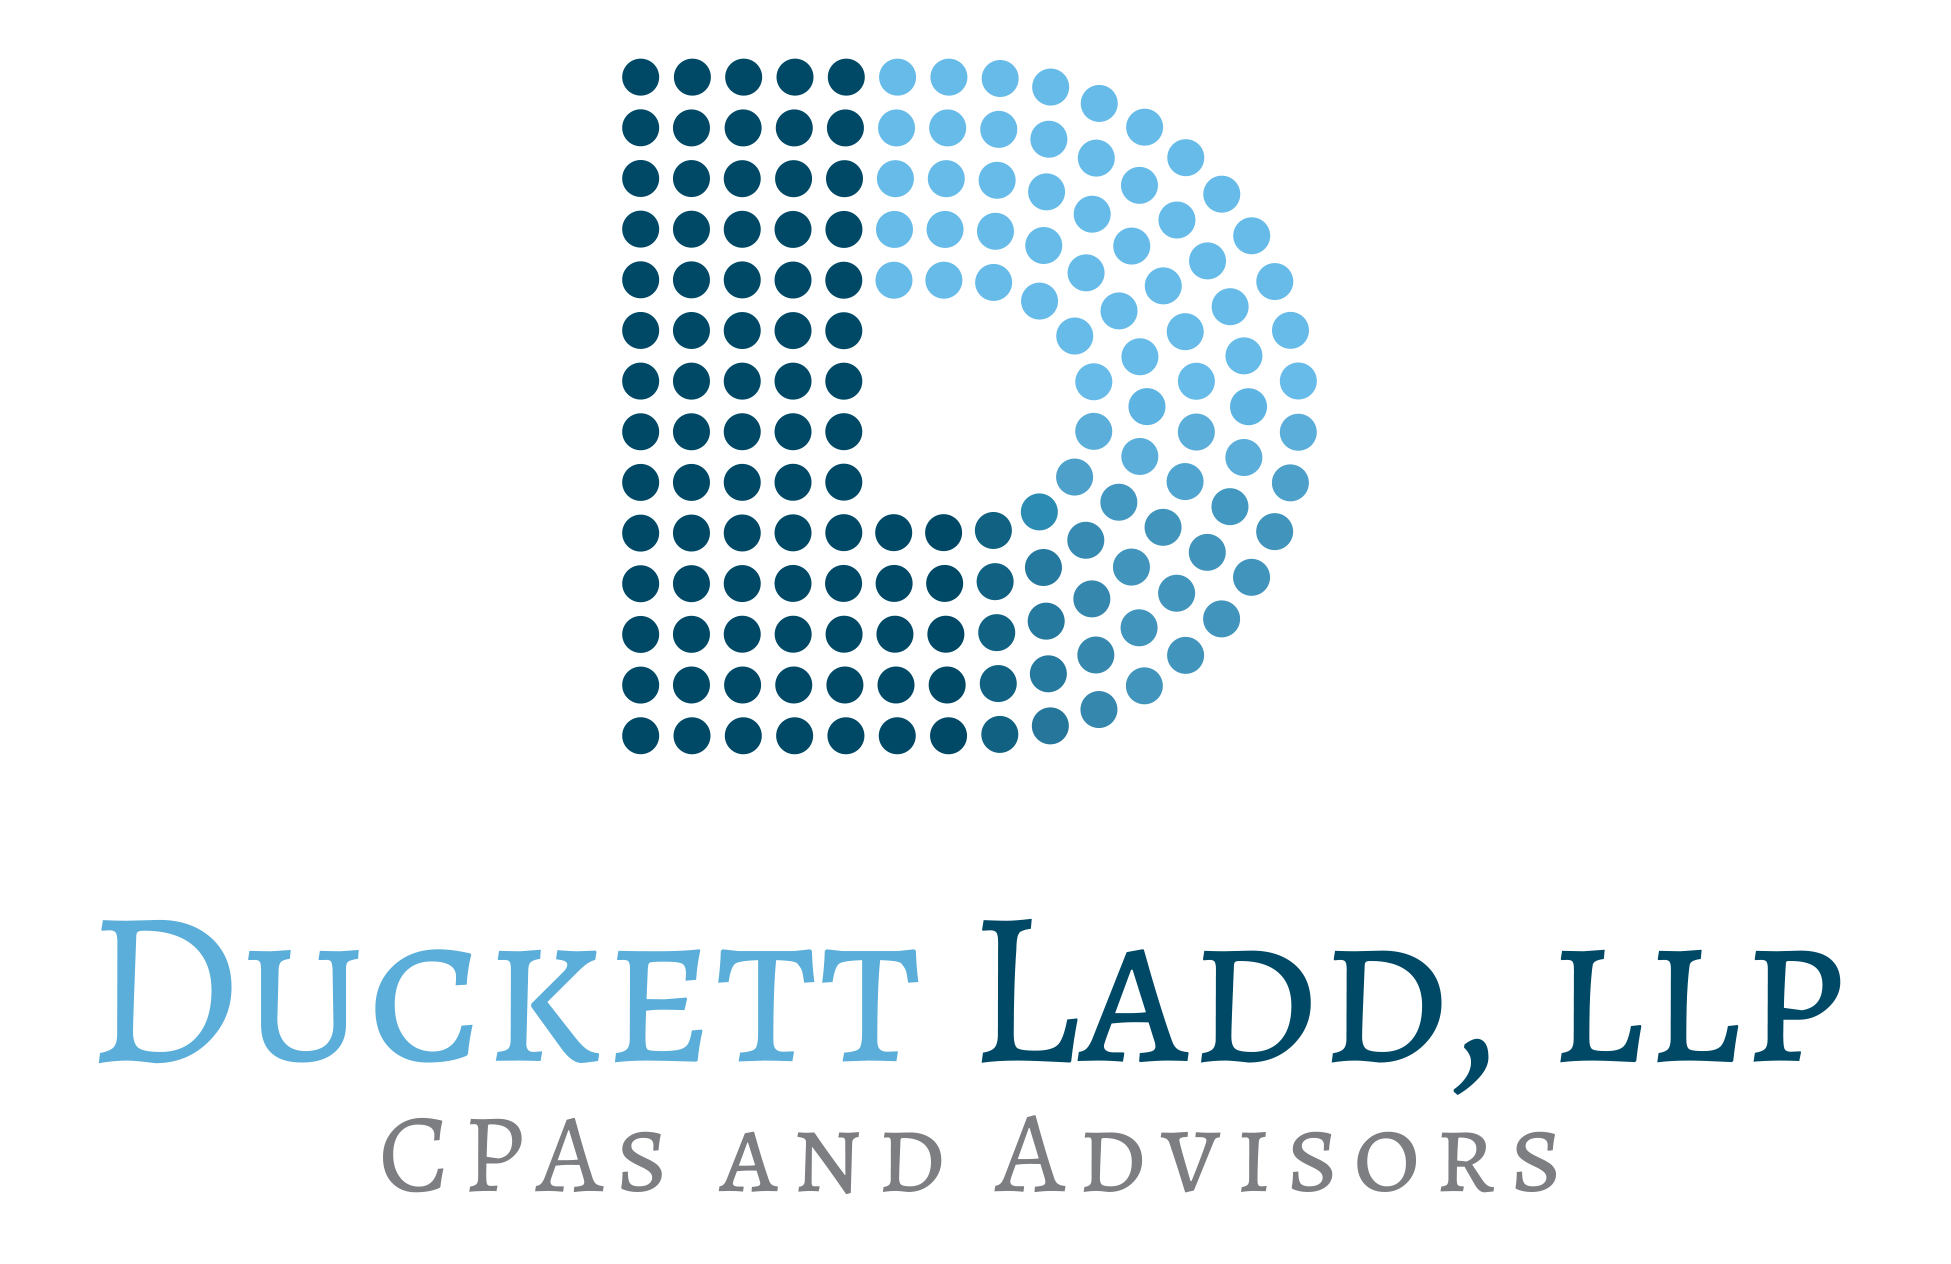 Duckett Ladd logo